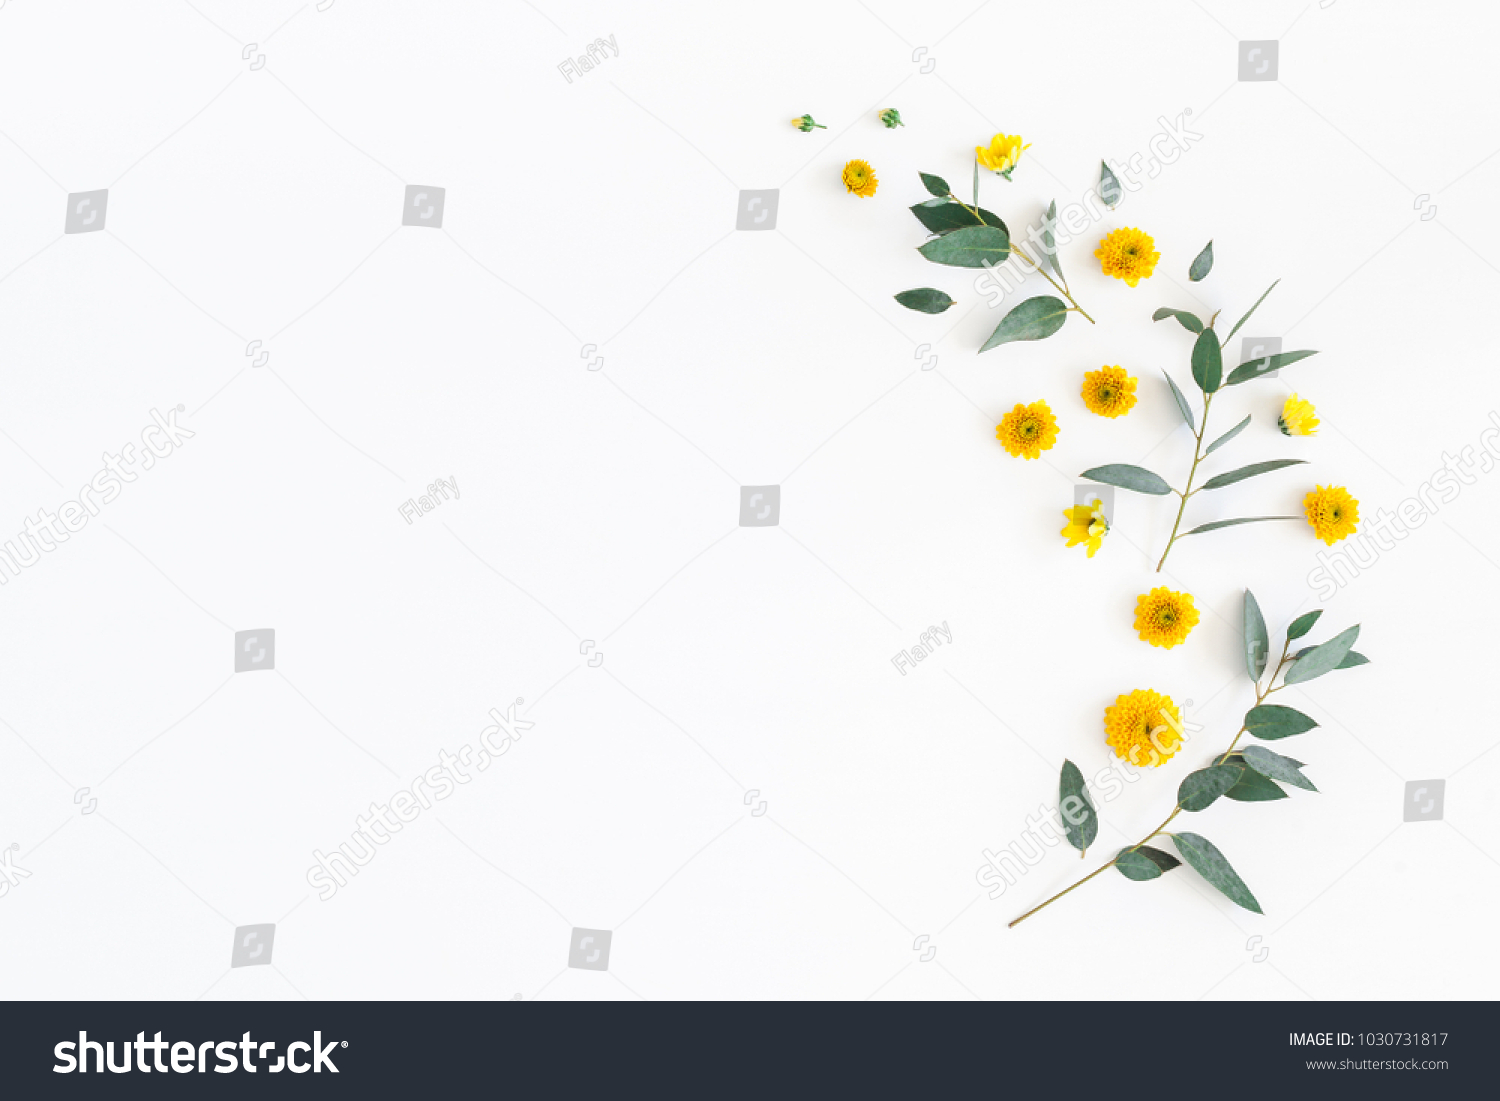 Flowers composition. Pattern made of yellow flowers and eucalyptus leaves on white background. Flat lay, top view, copy space #1030731817